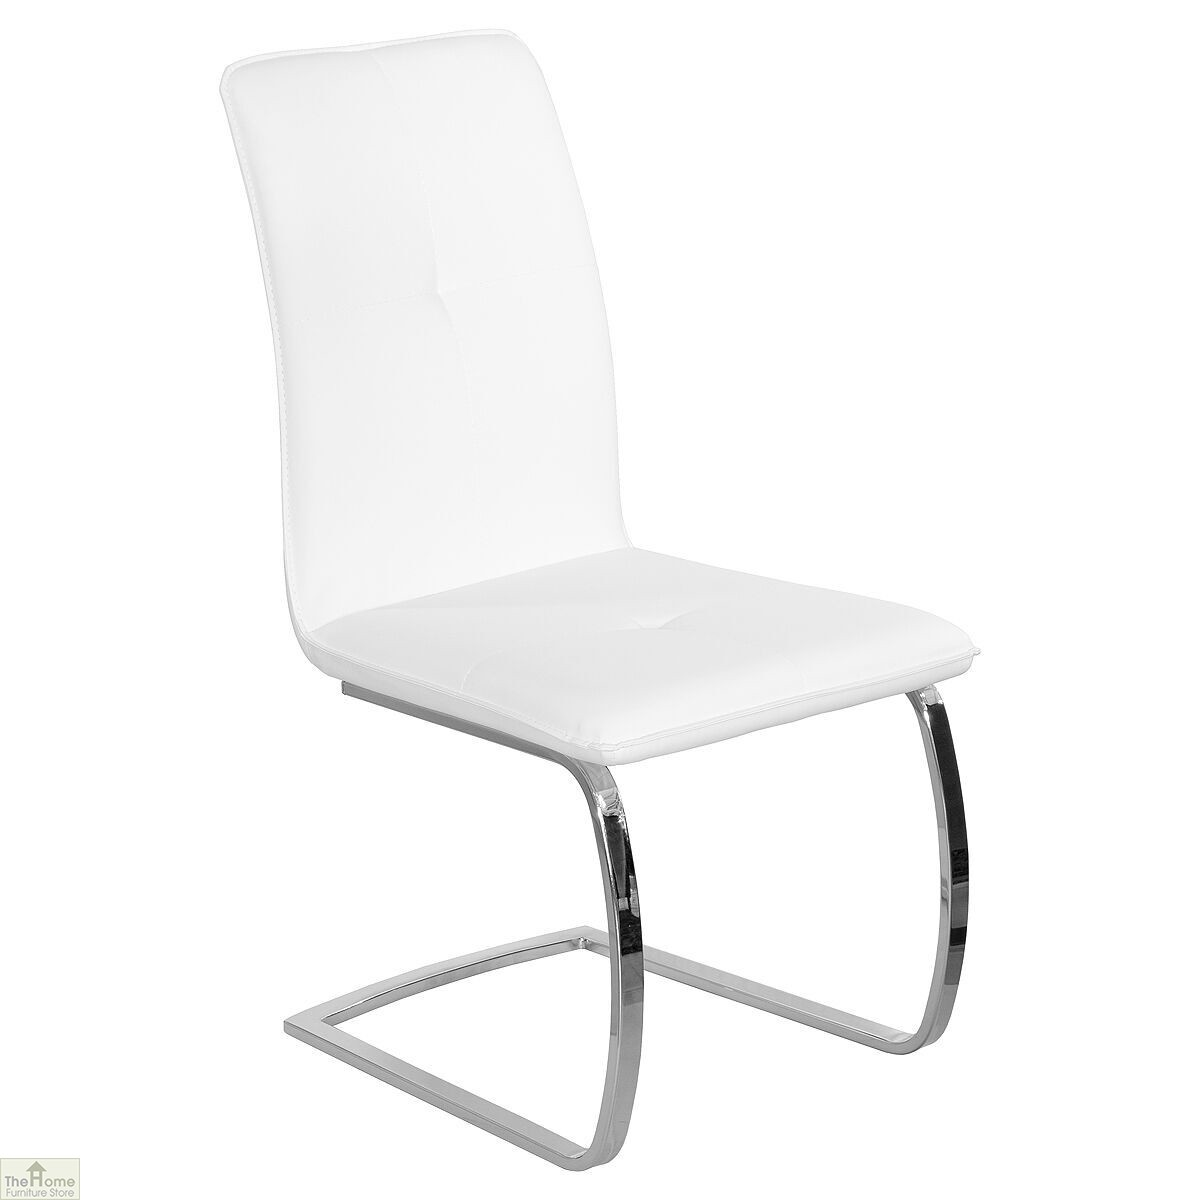 Handleback Dining Chair The Home Furniture Store